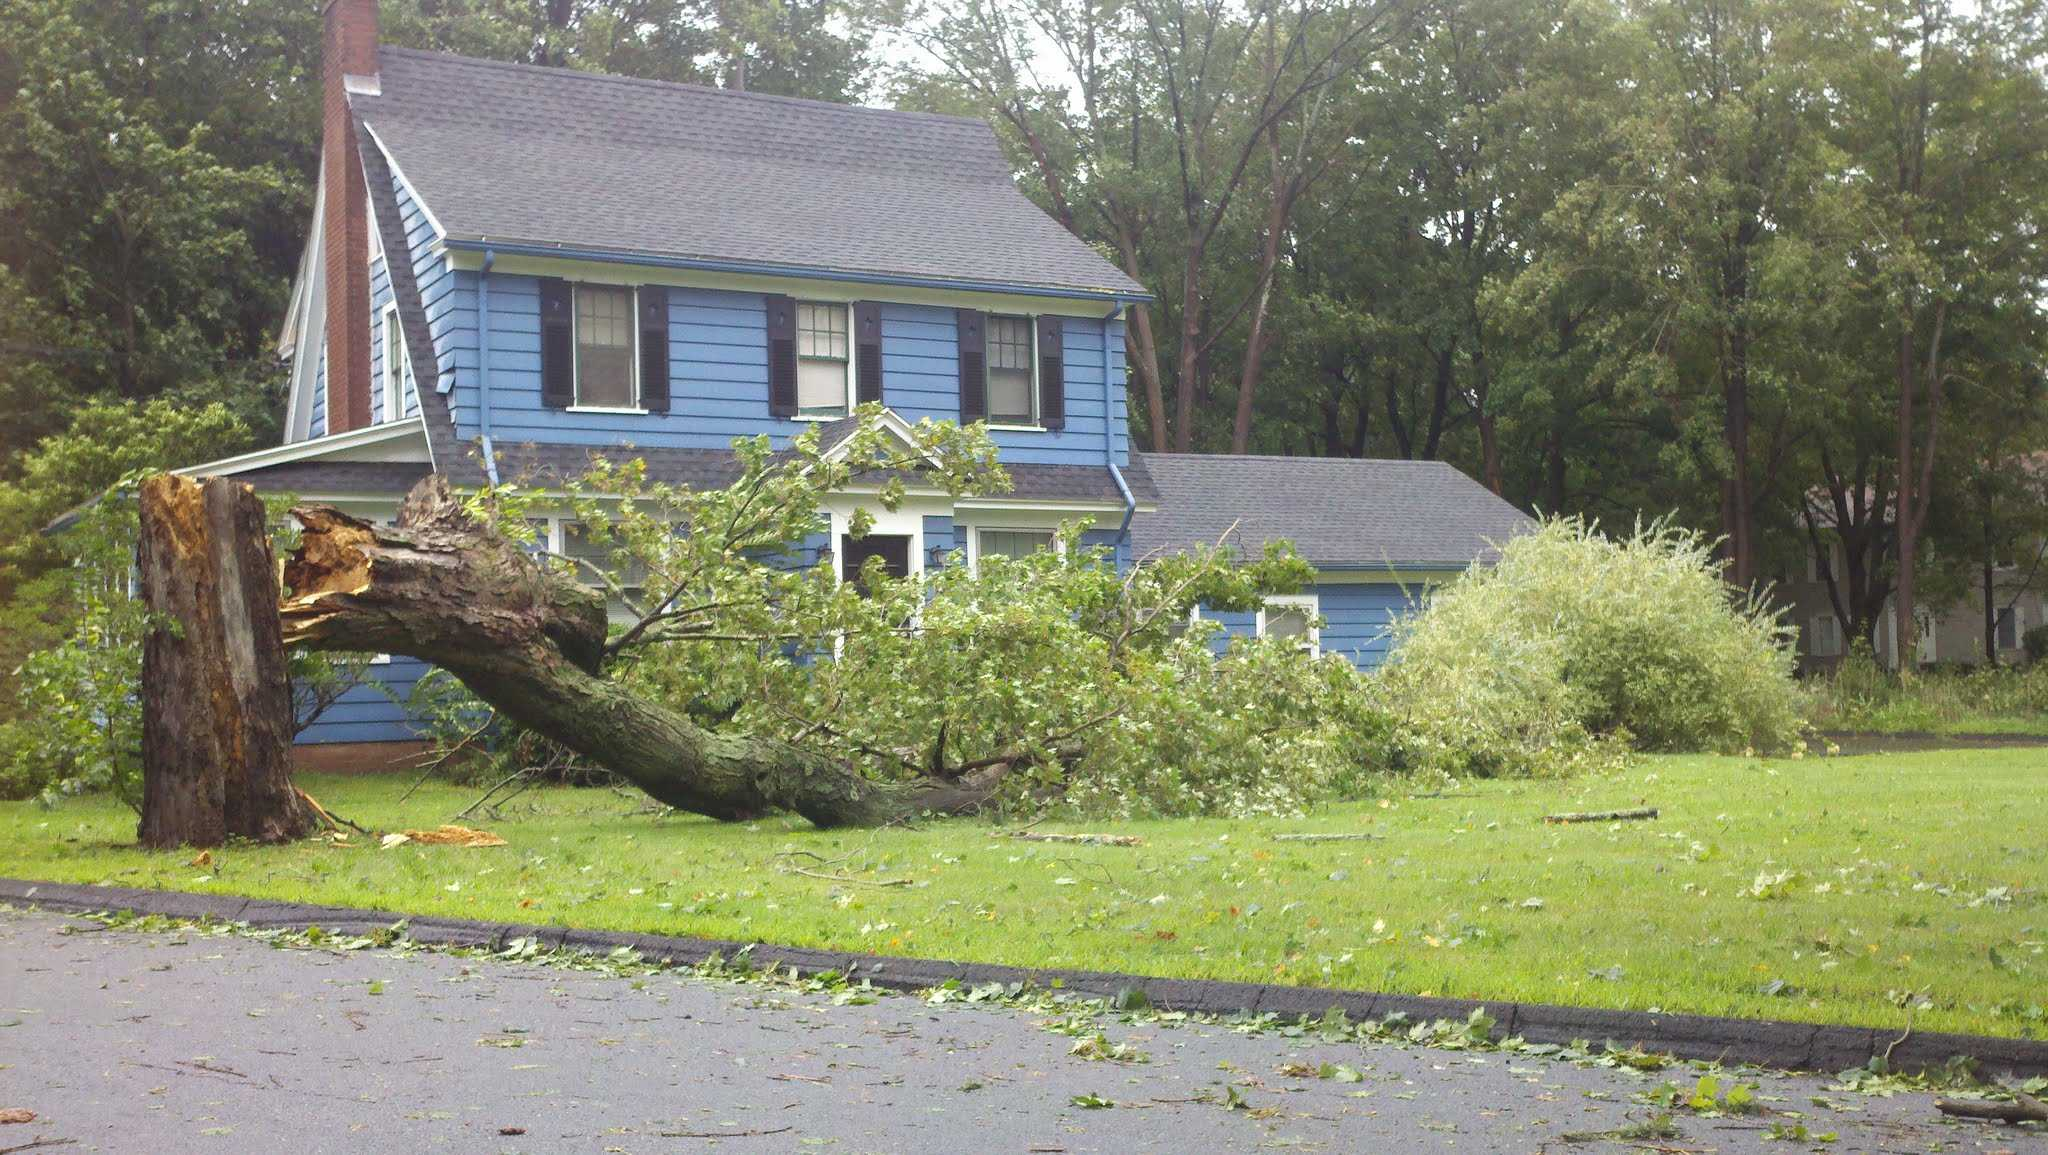 Hurricane Irene hits Quinnipiac [Slideshow]